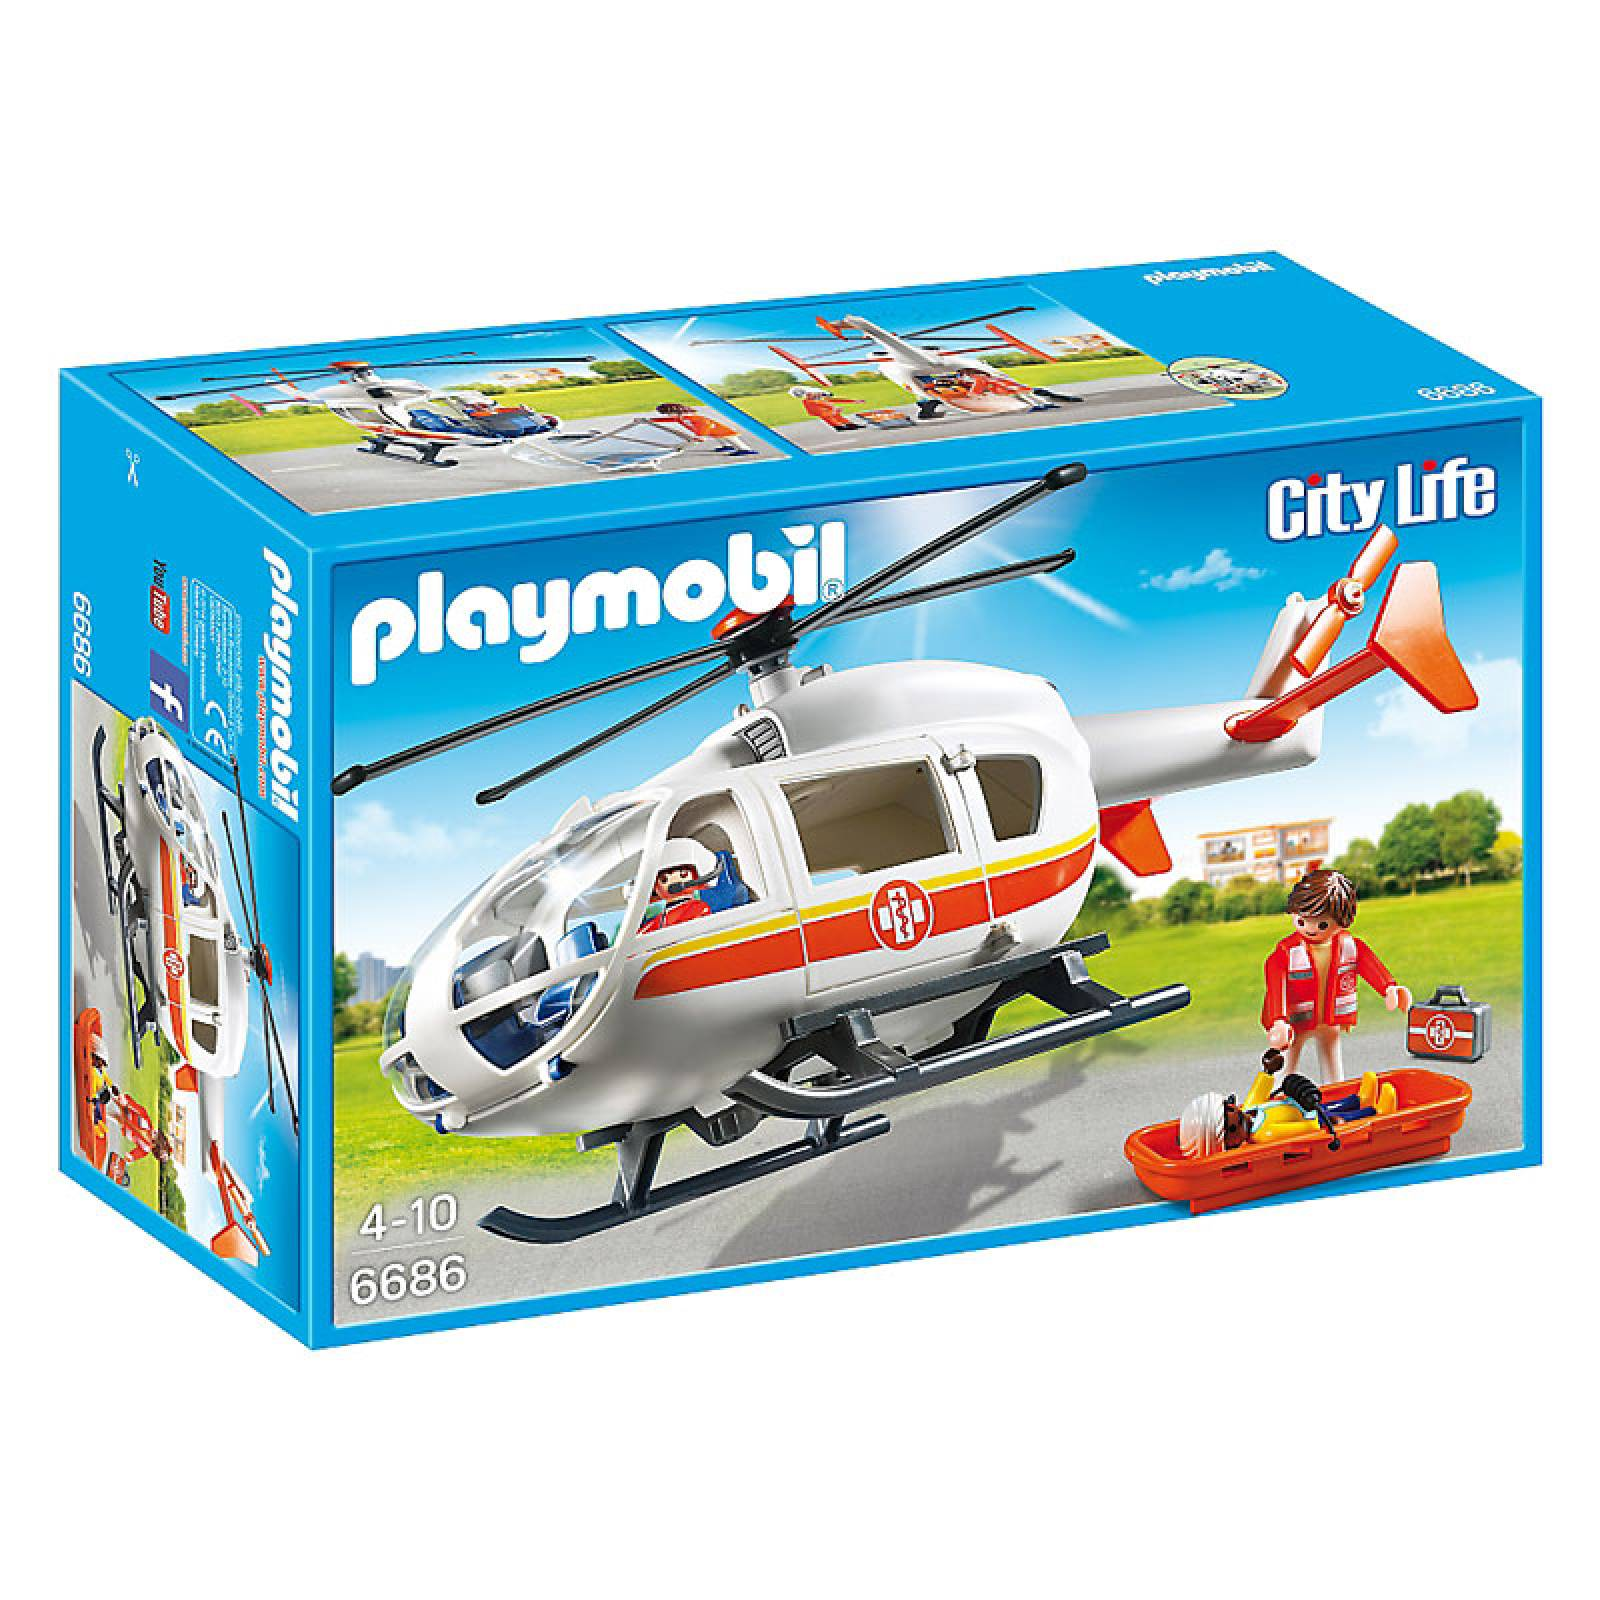 Emergency Medical Helicopter City Life Playmobil 6686 thumbnails